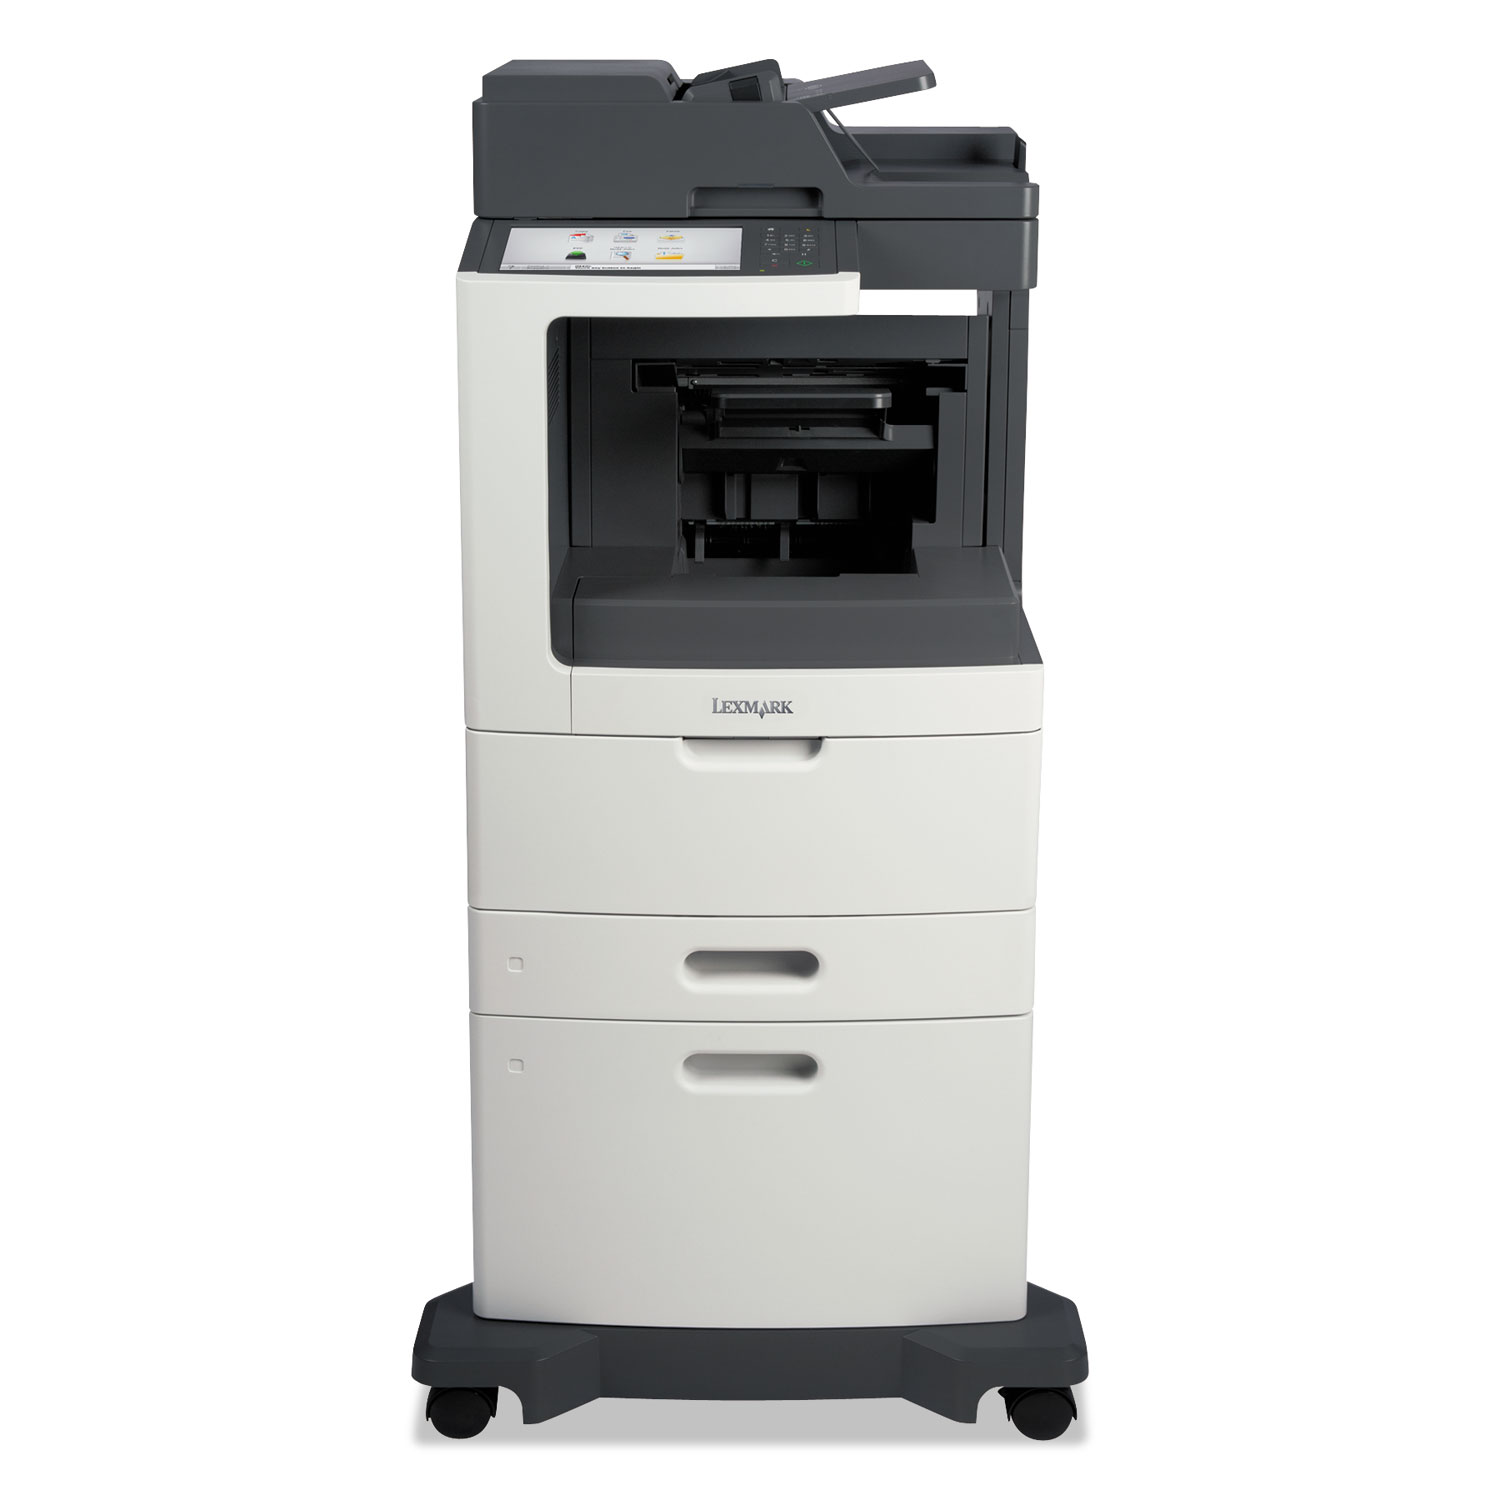 MX812dxfe Multifunction Laser Printer, Copy/Fax/Print/Scan